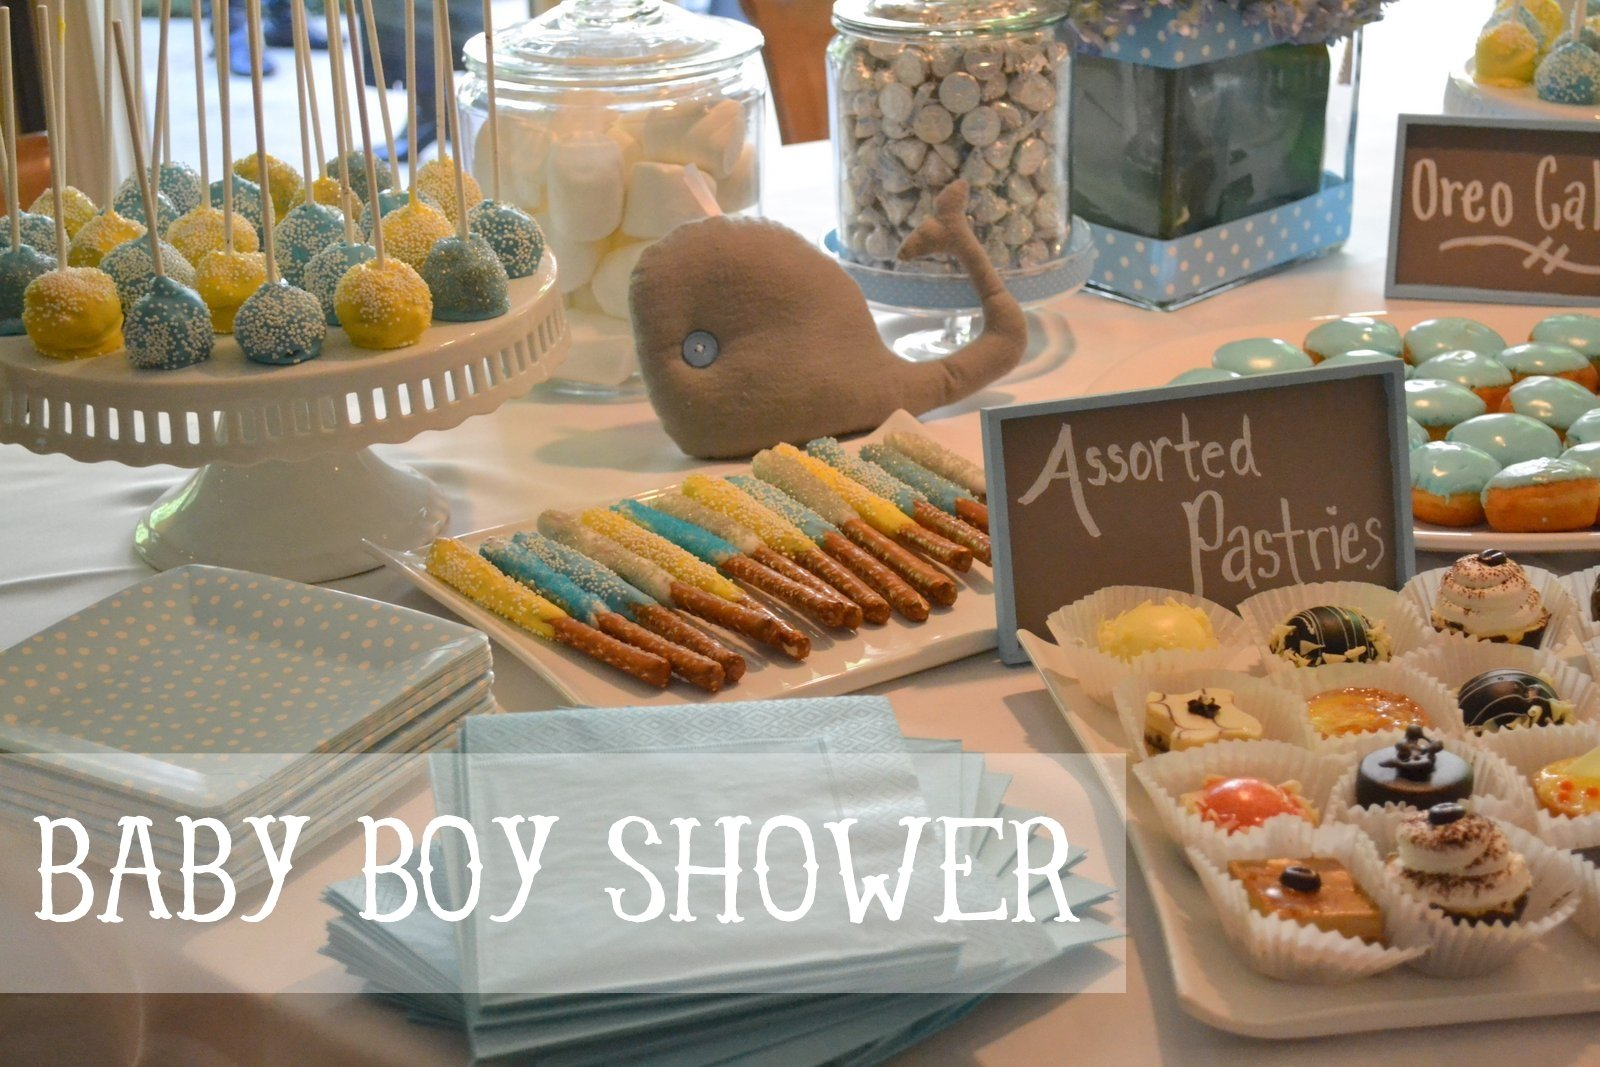 10 Attractive Baby Shower Food Ideas For A Boy whale baby boy shower ideas 4 2020